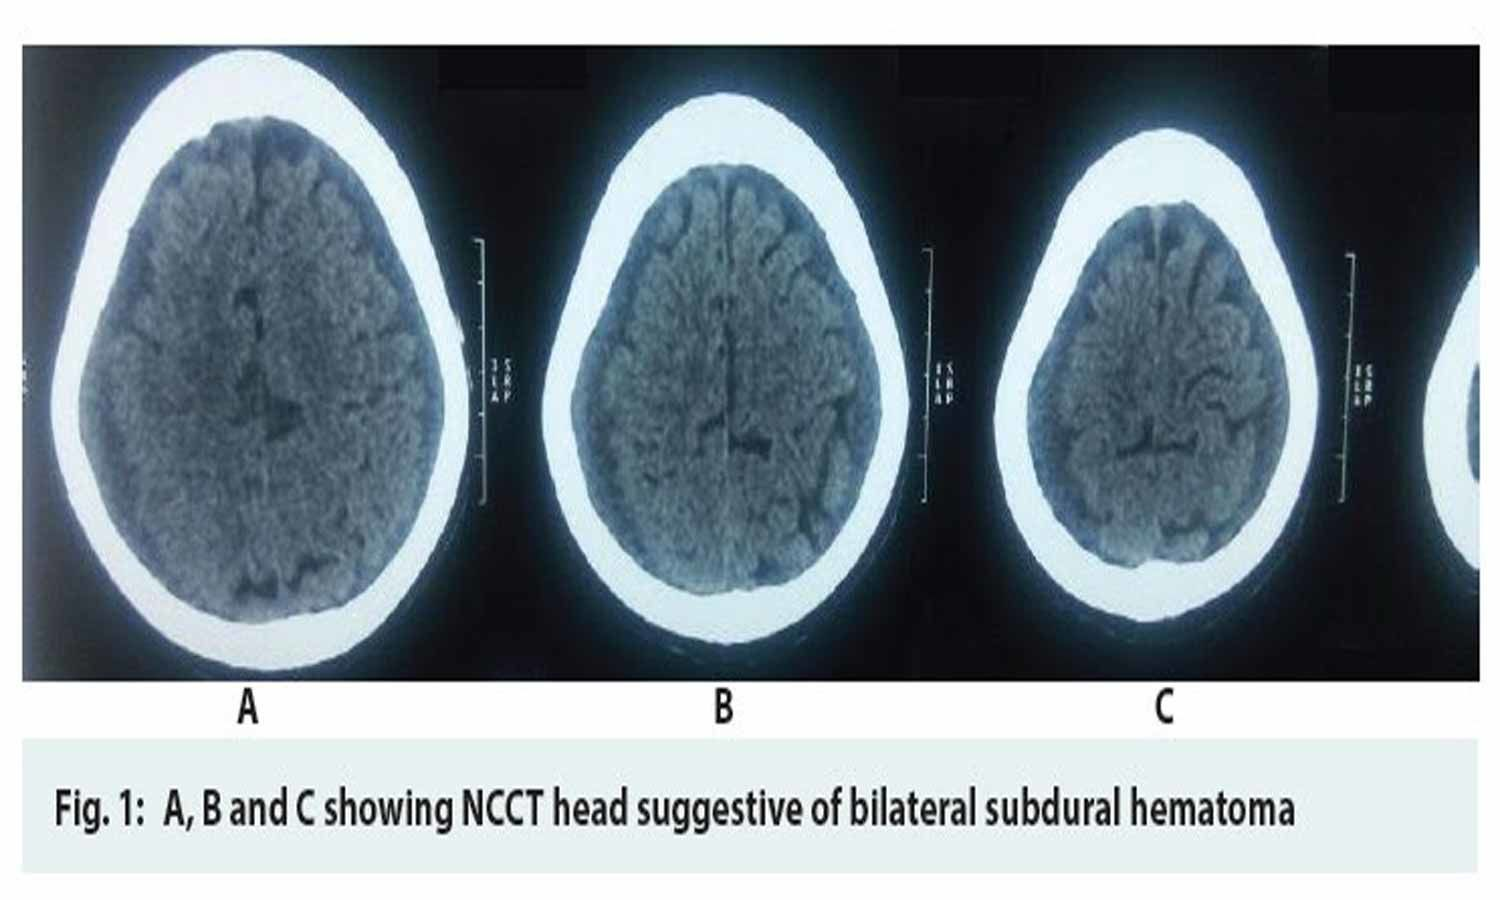 Spontaneous Bilateral Subdural Hematoma in case of Falciparum Malaria